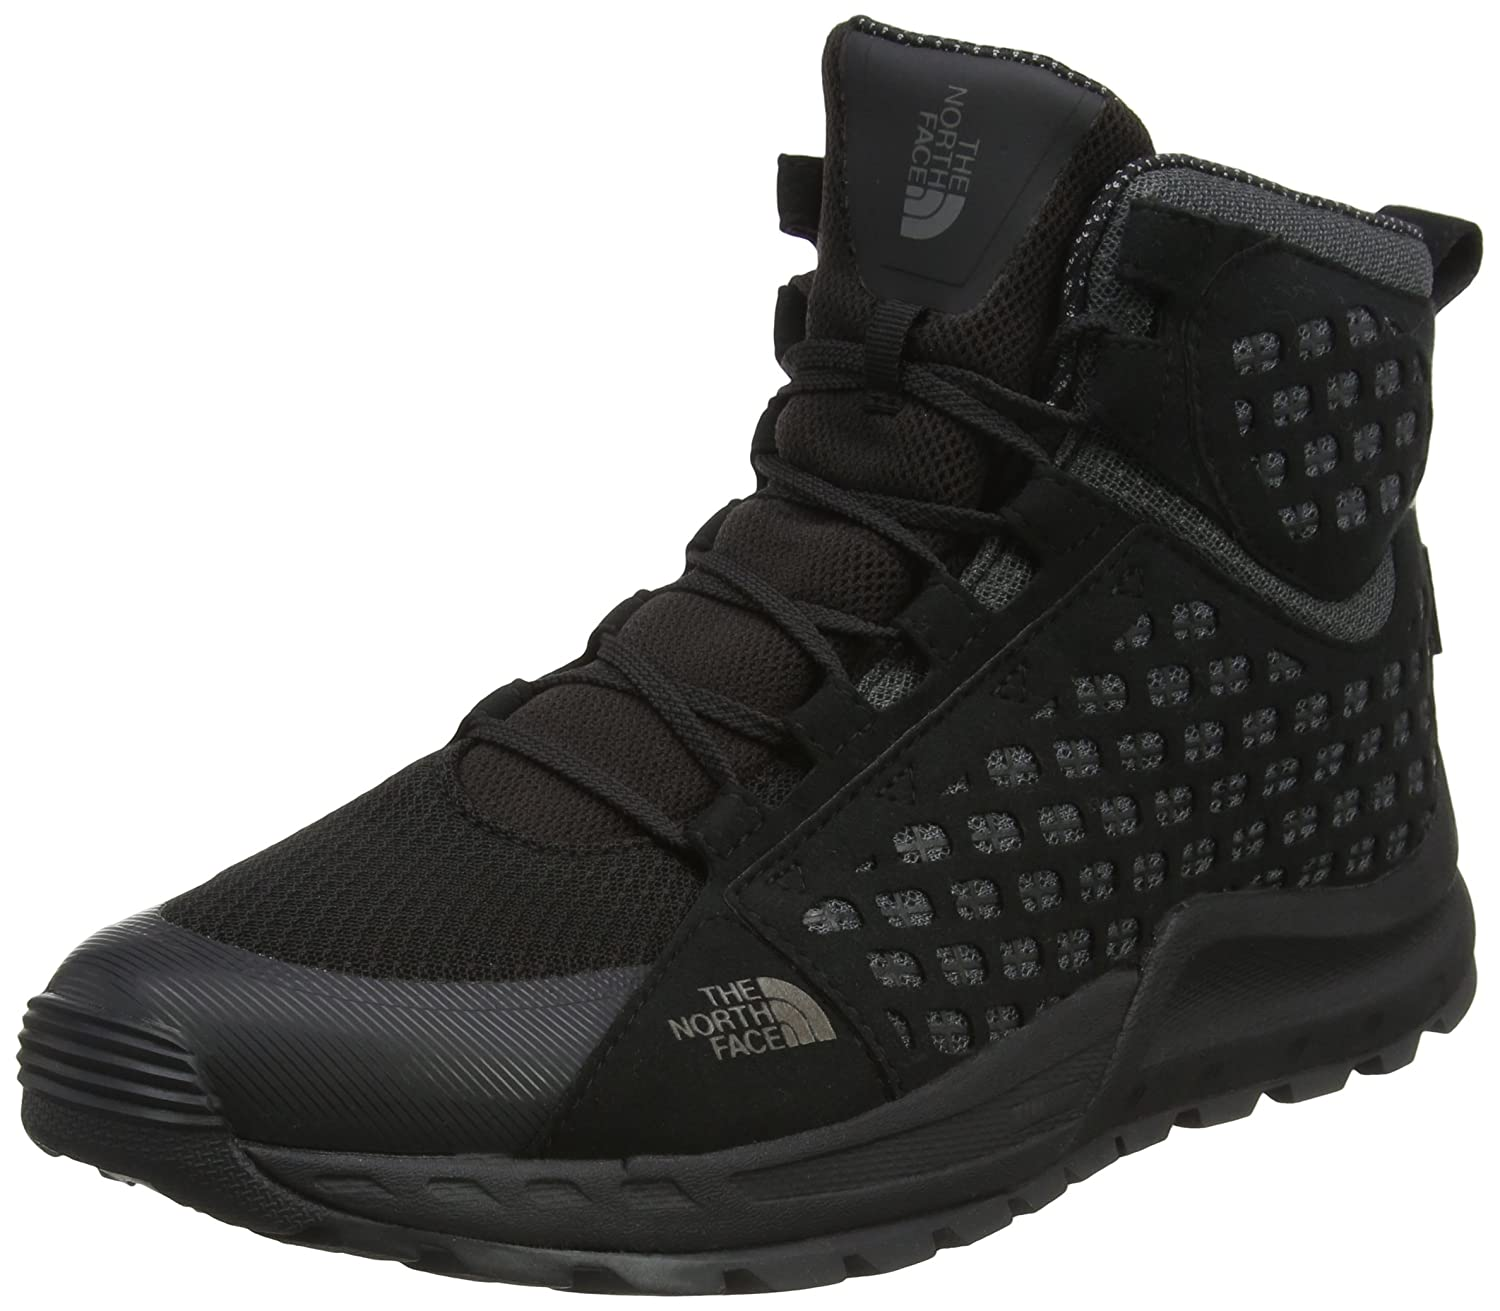 THE NORTH FACE Herren Mountain Turnschuhe Mid Waterproof Trekking- & Wanderstiefel